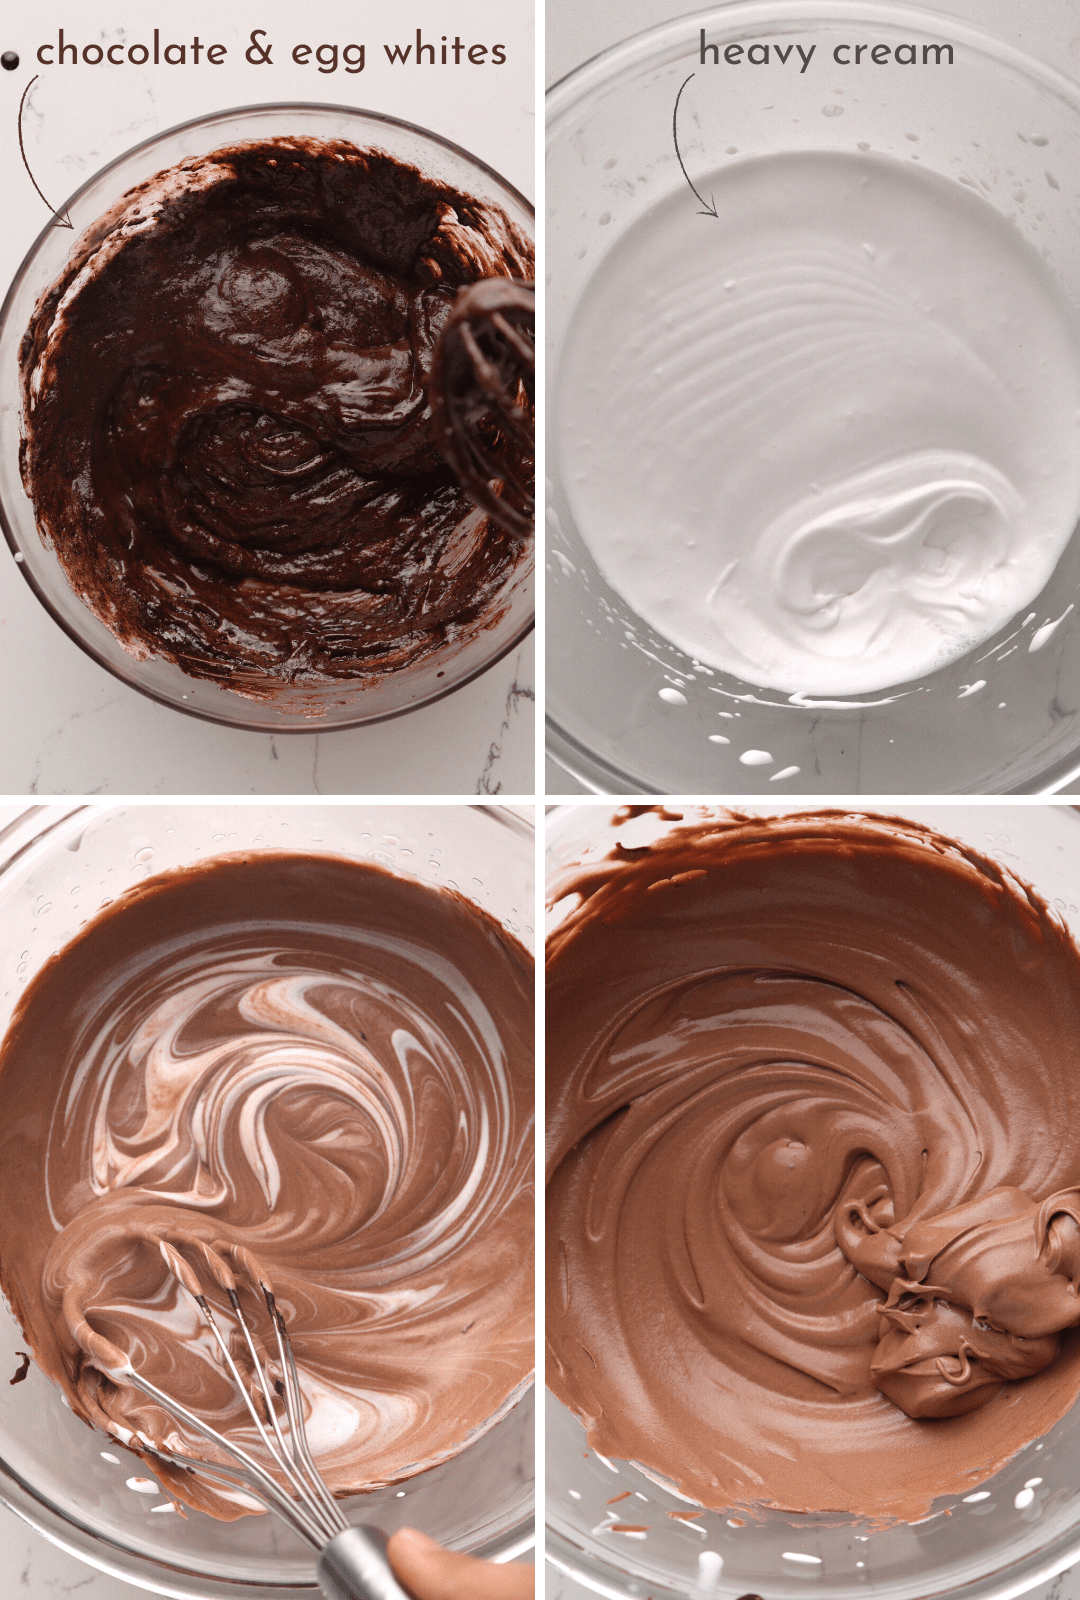 keto-chocolate-mousse-procedure-part-2-collage-thehealthcreative